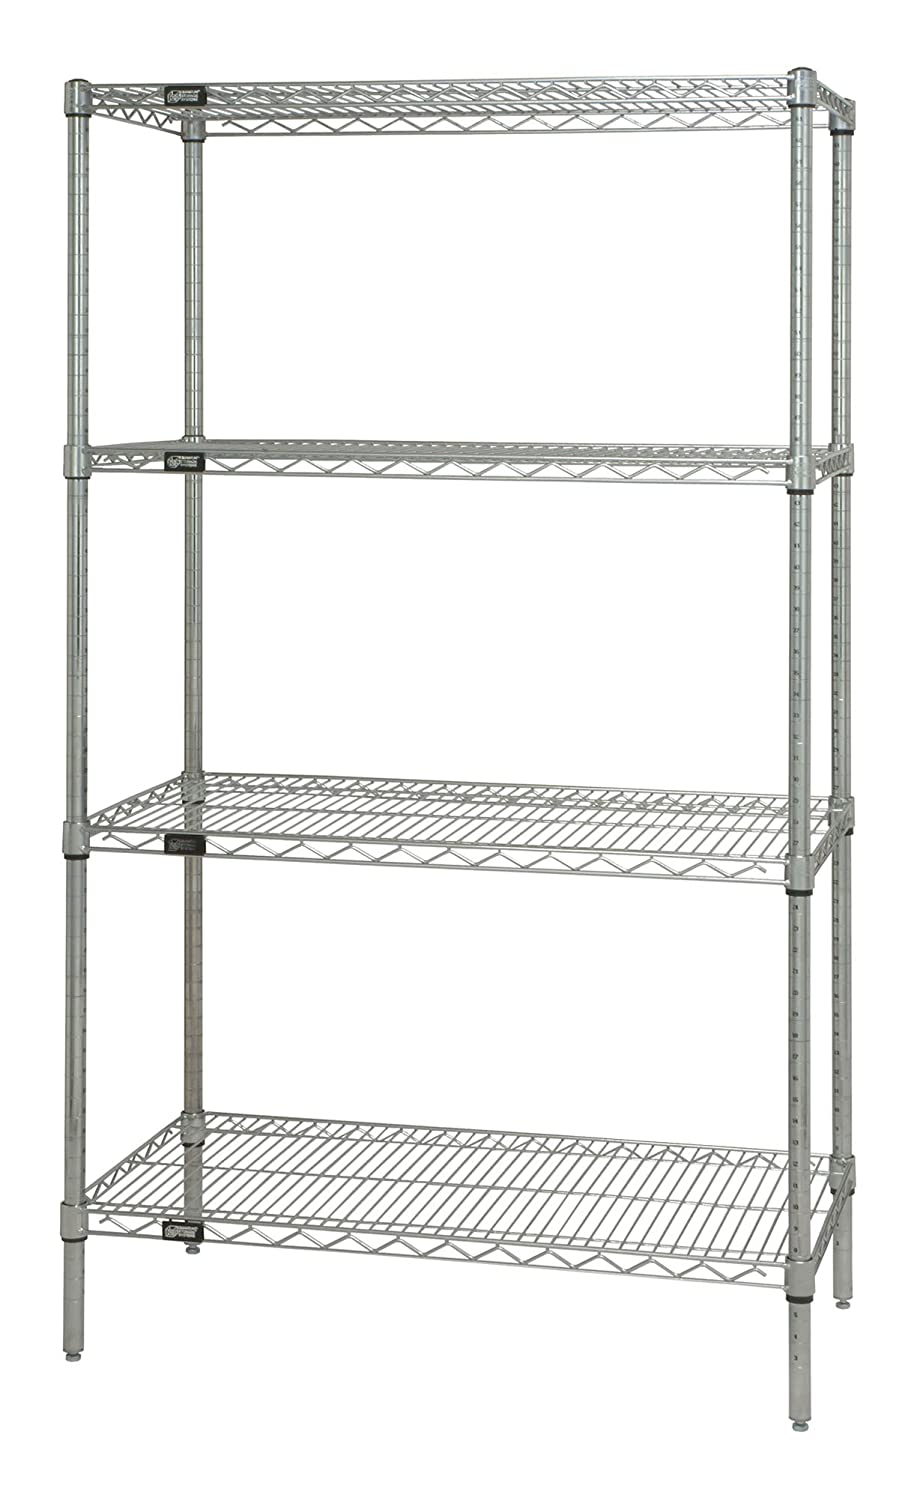 Chrome Finish Quantum Storage Systems WR54-2430C Starter Kit for 54 High 4-Tier Wire Shelving Unit 24 Width x 30 Length x 54 Height